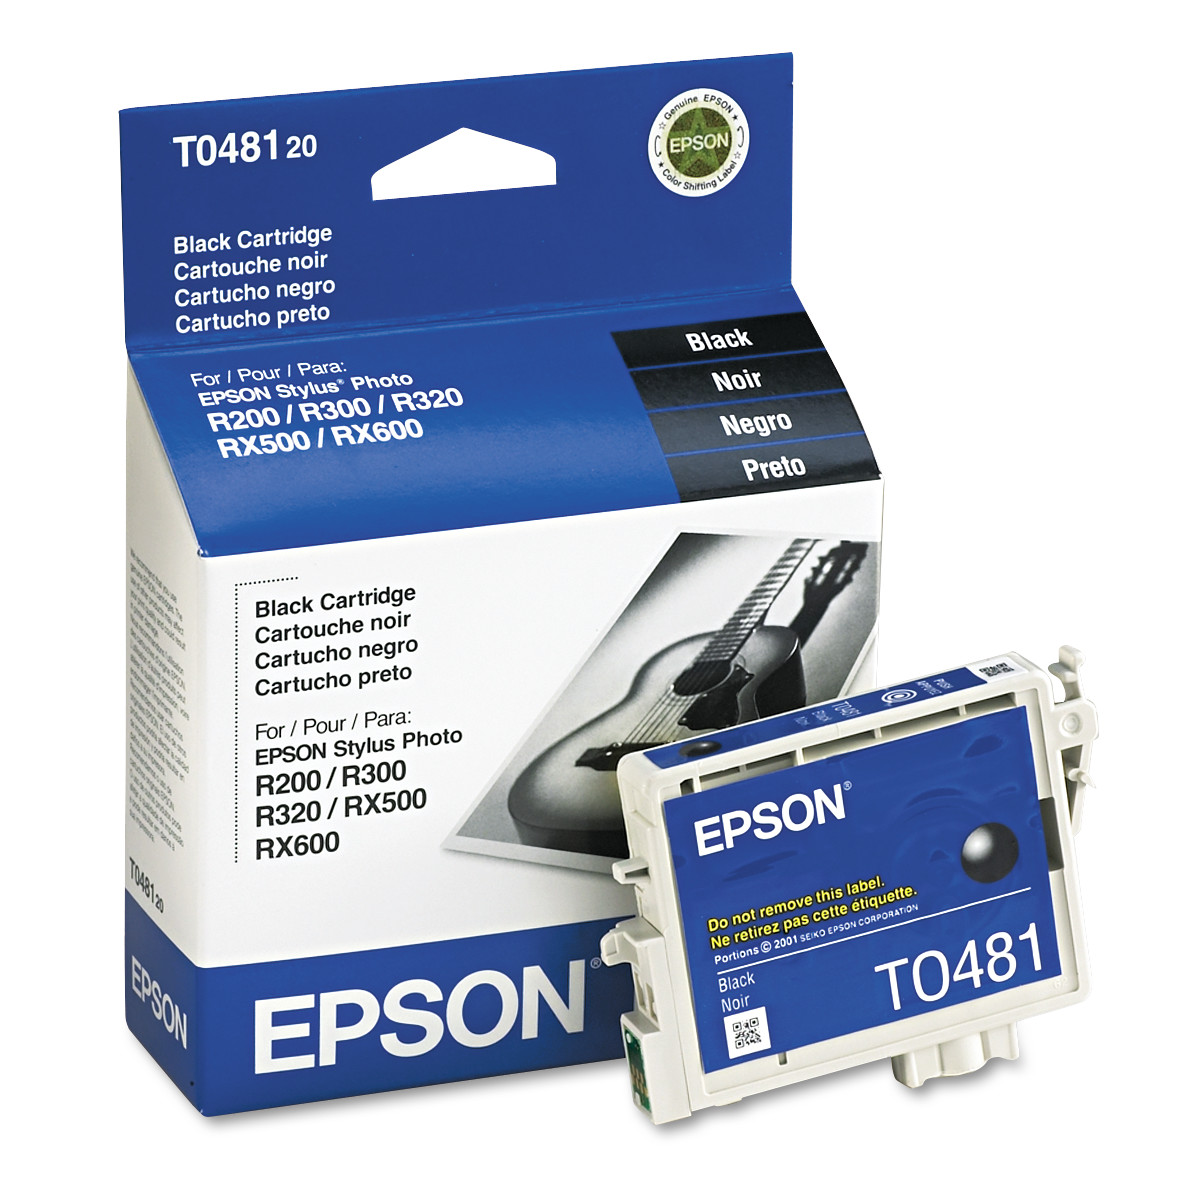 Epson T048120 (48) Quick-Dry Ink, Black by Epson